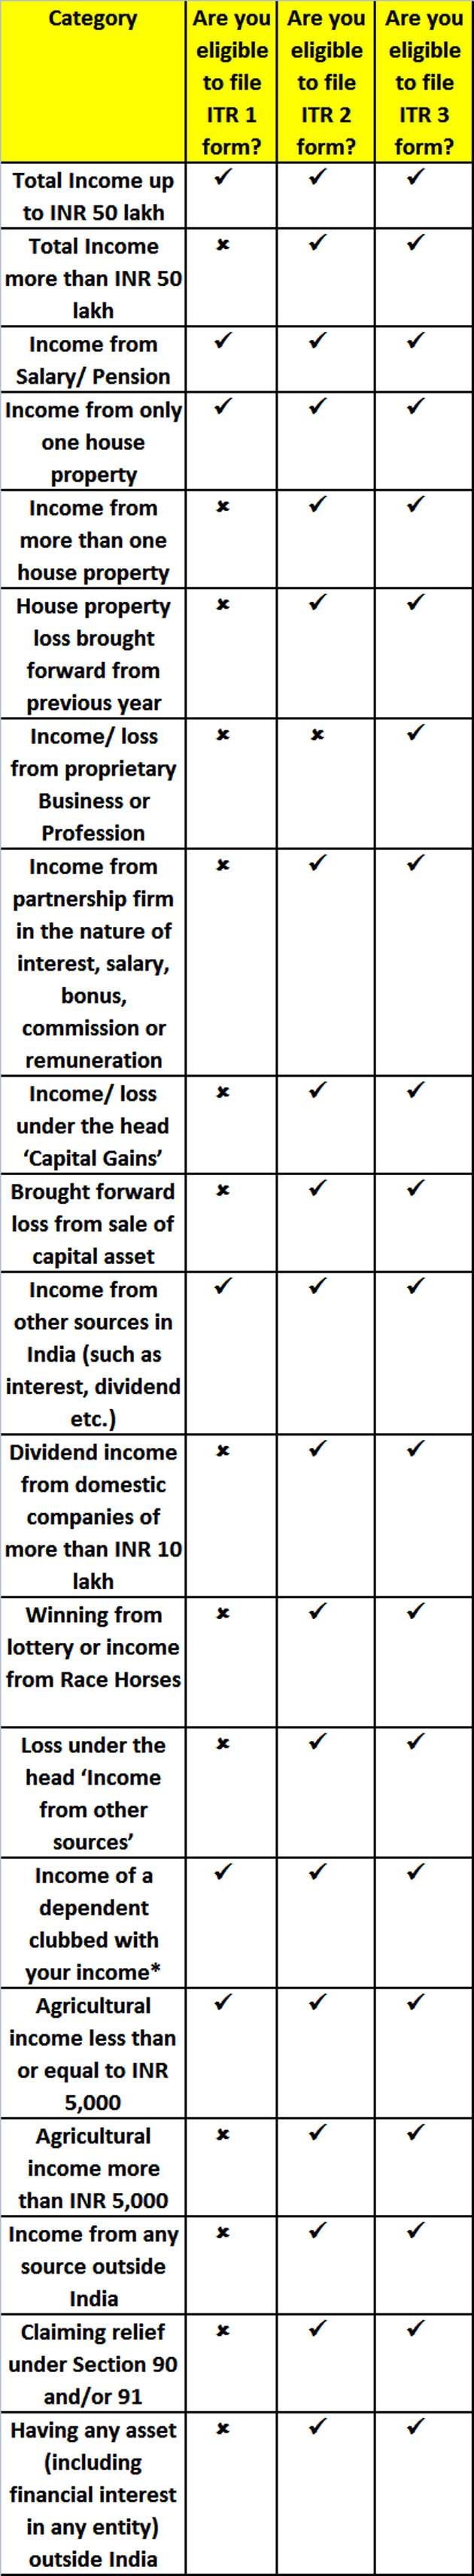 Applicability of Different ITR Forms